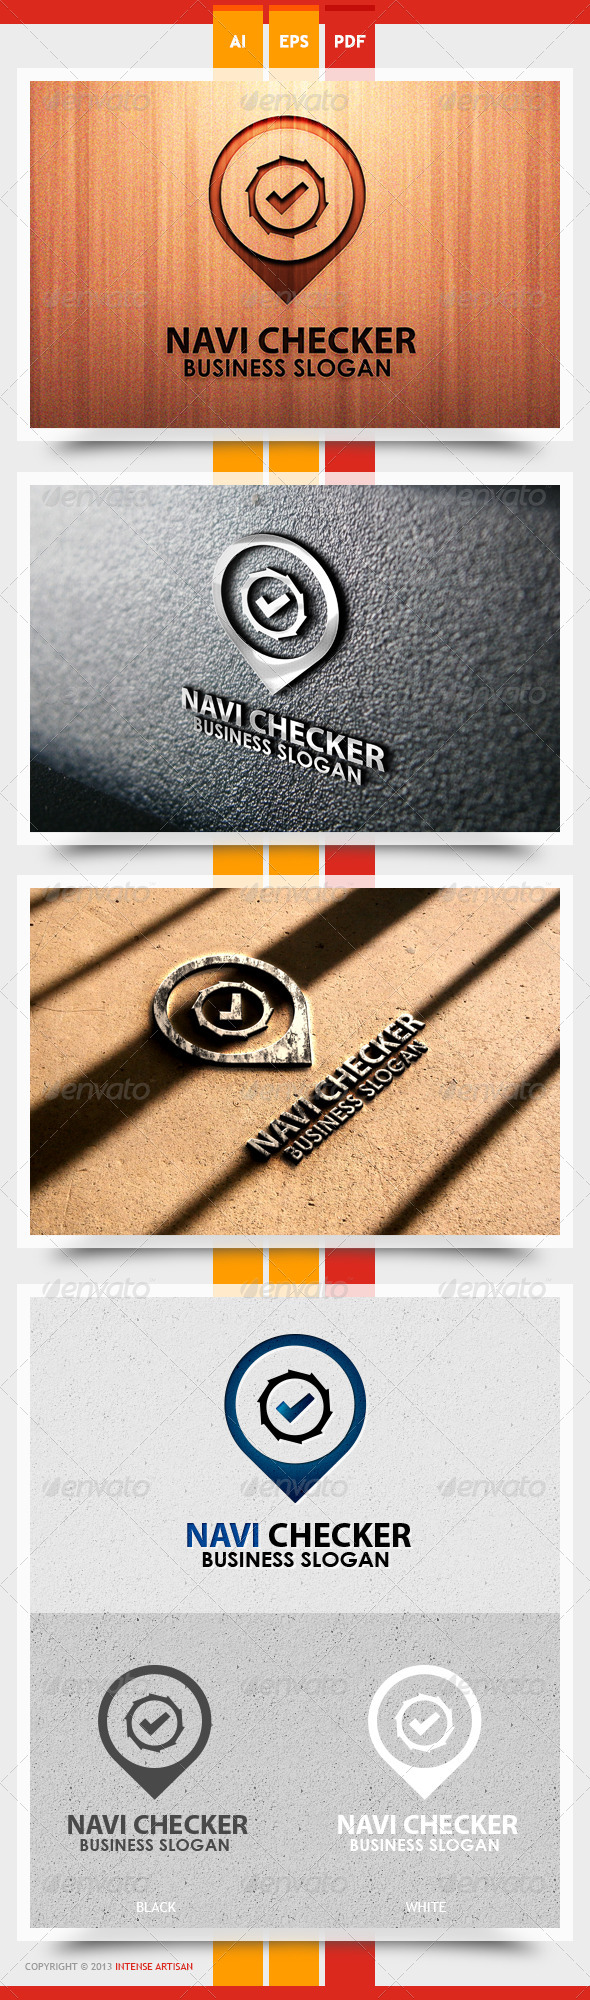 Navi Checker Logo Template